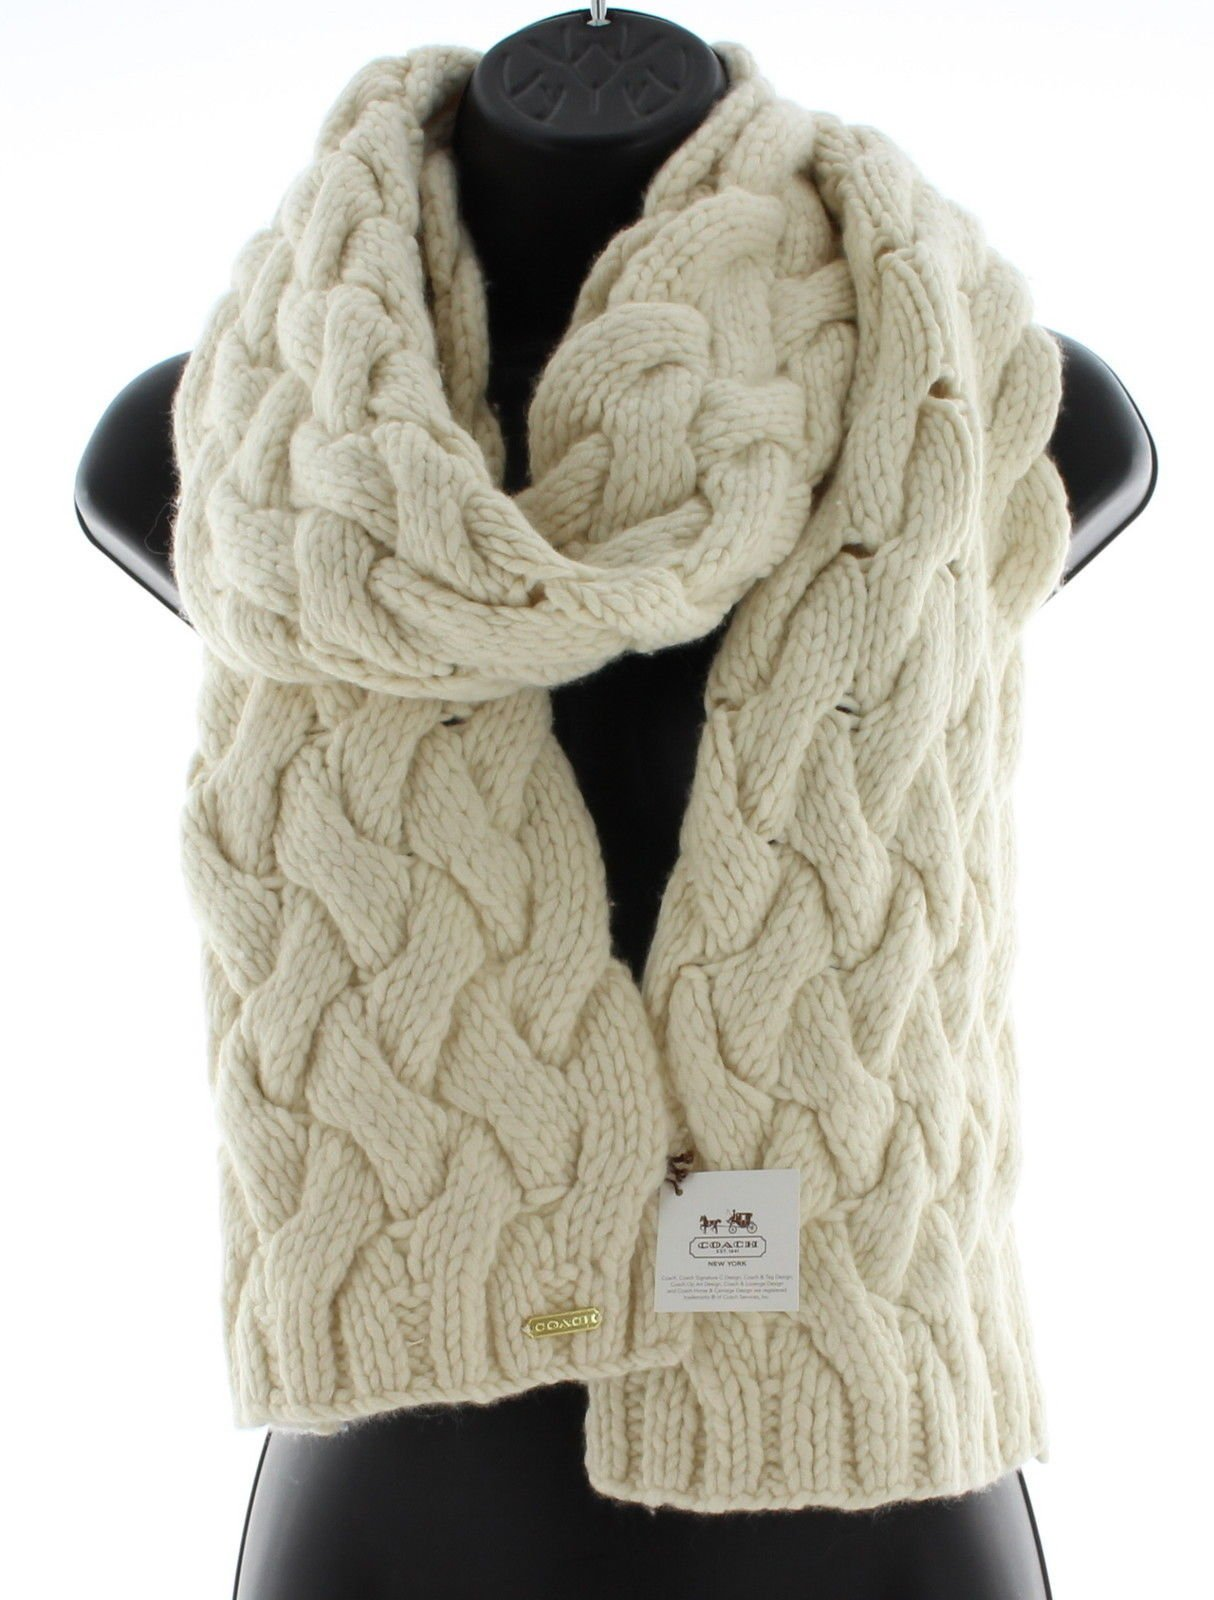 Coach Wool Cashmere Braided Cable Knit Winter Scarf (Cream) by Coach